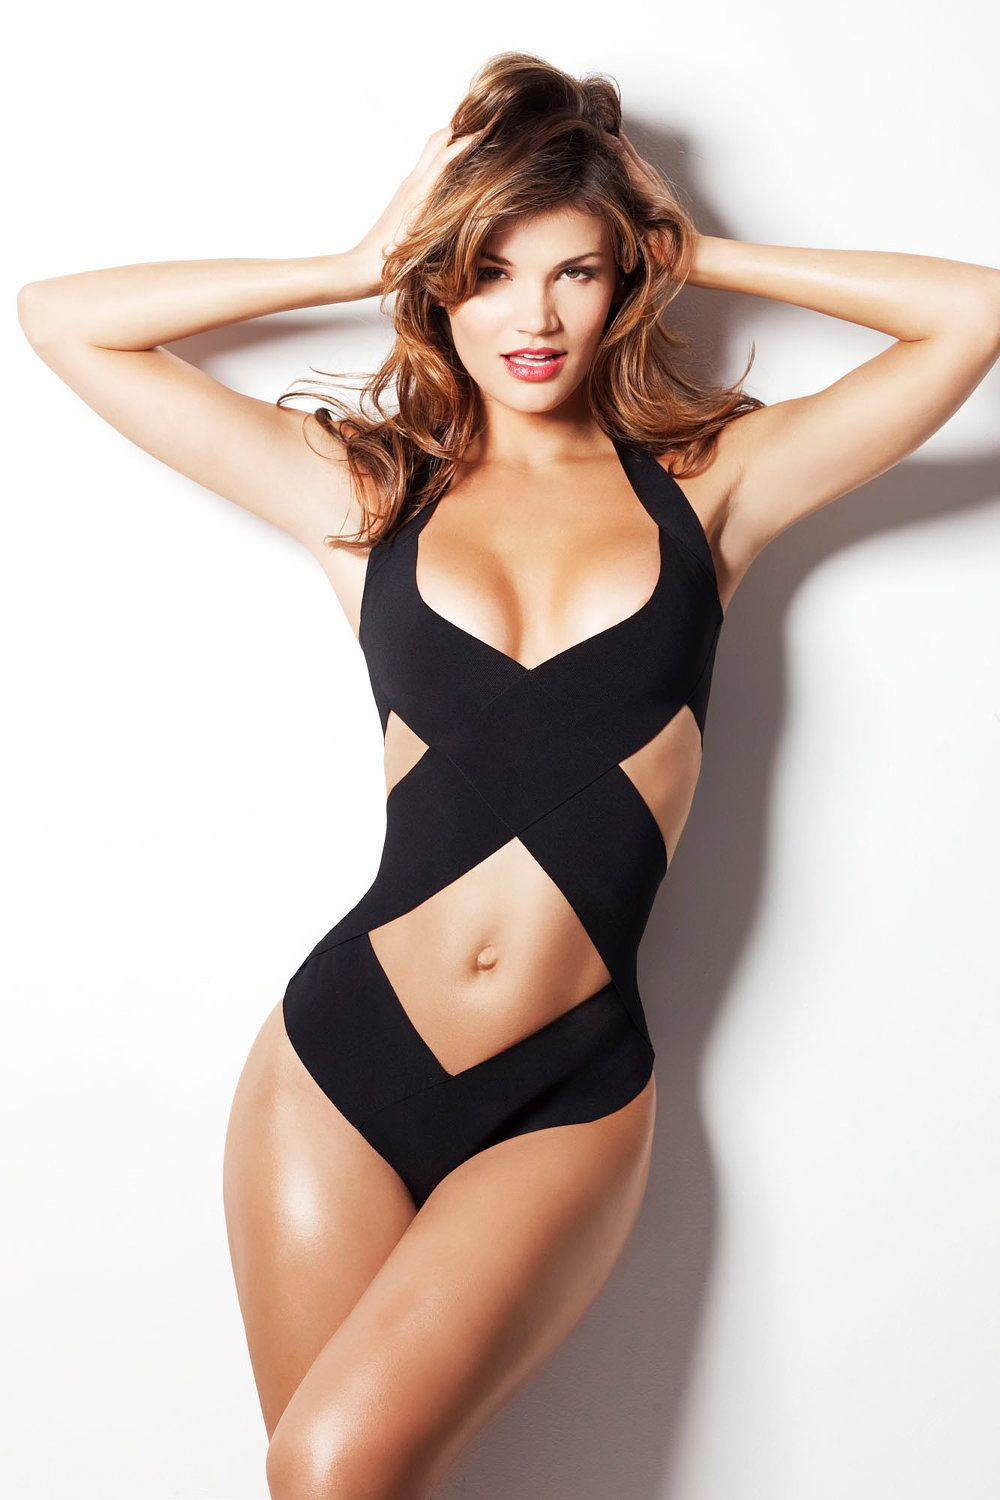 25f2531f855c1 holy sexy batman! if i had this body, i would go somewhere tropical & rock  this business w/bubbaloo!!